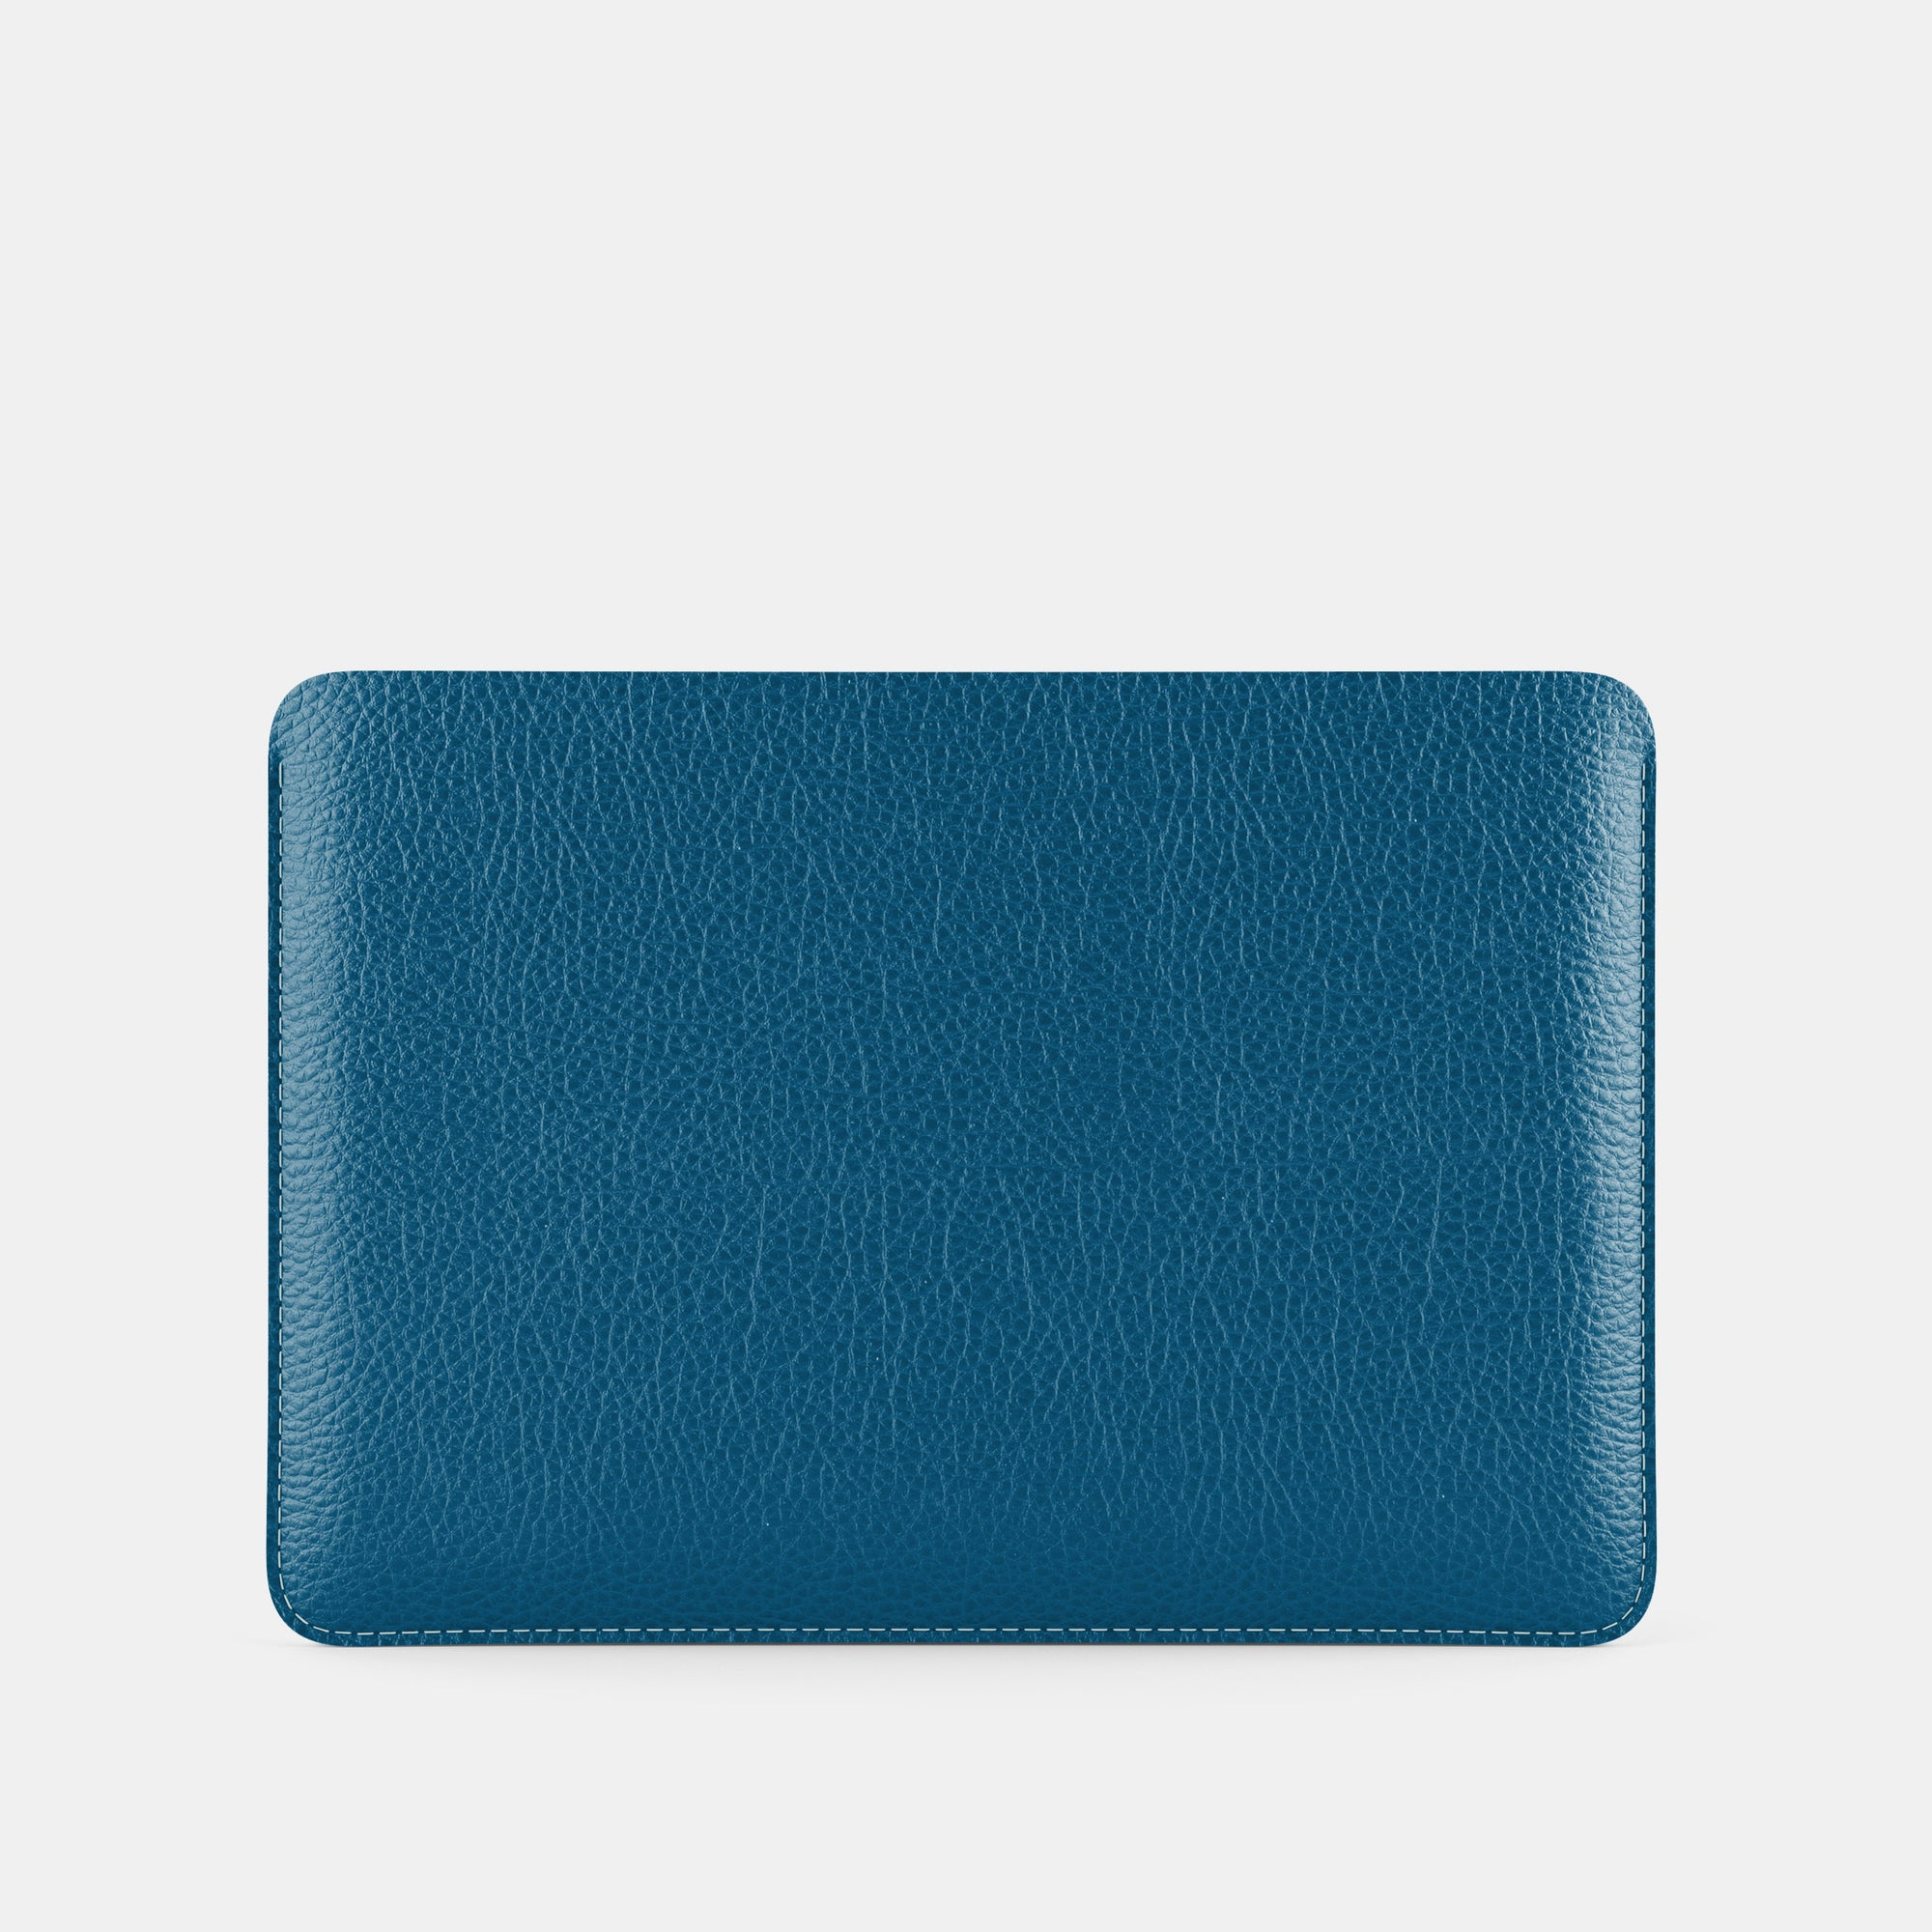 iPad Sleeve - Turquoise and Orange - RYAN London